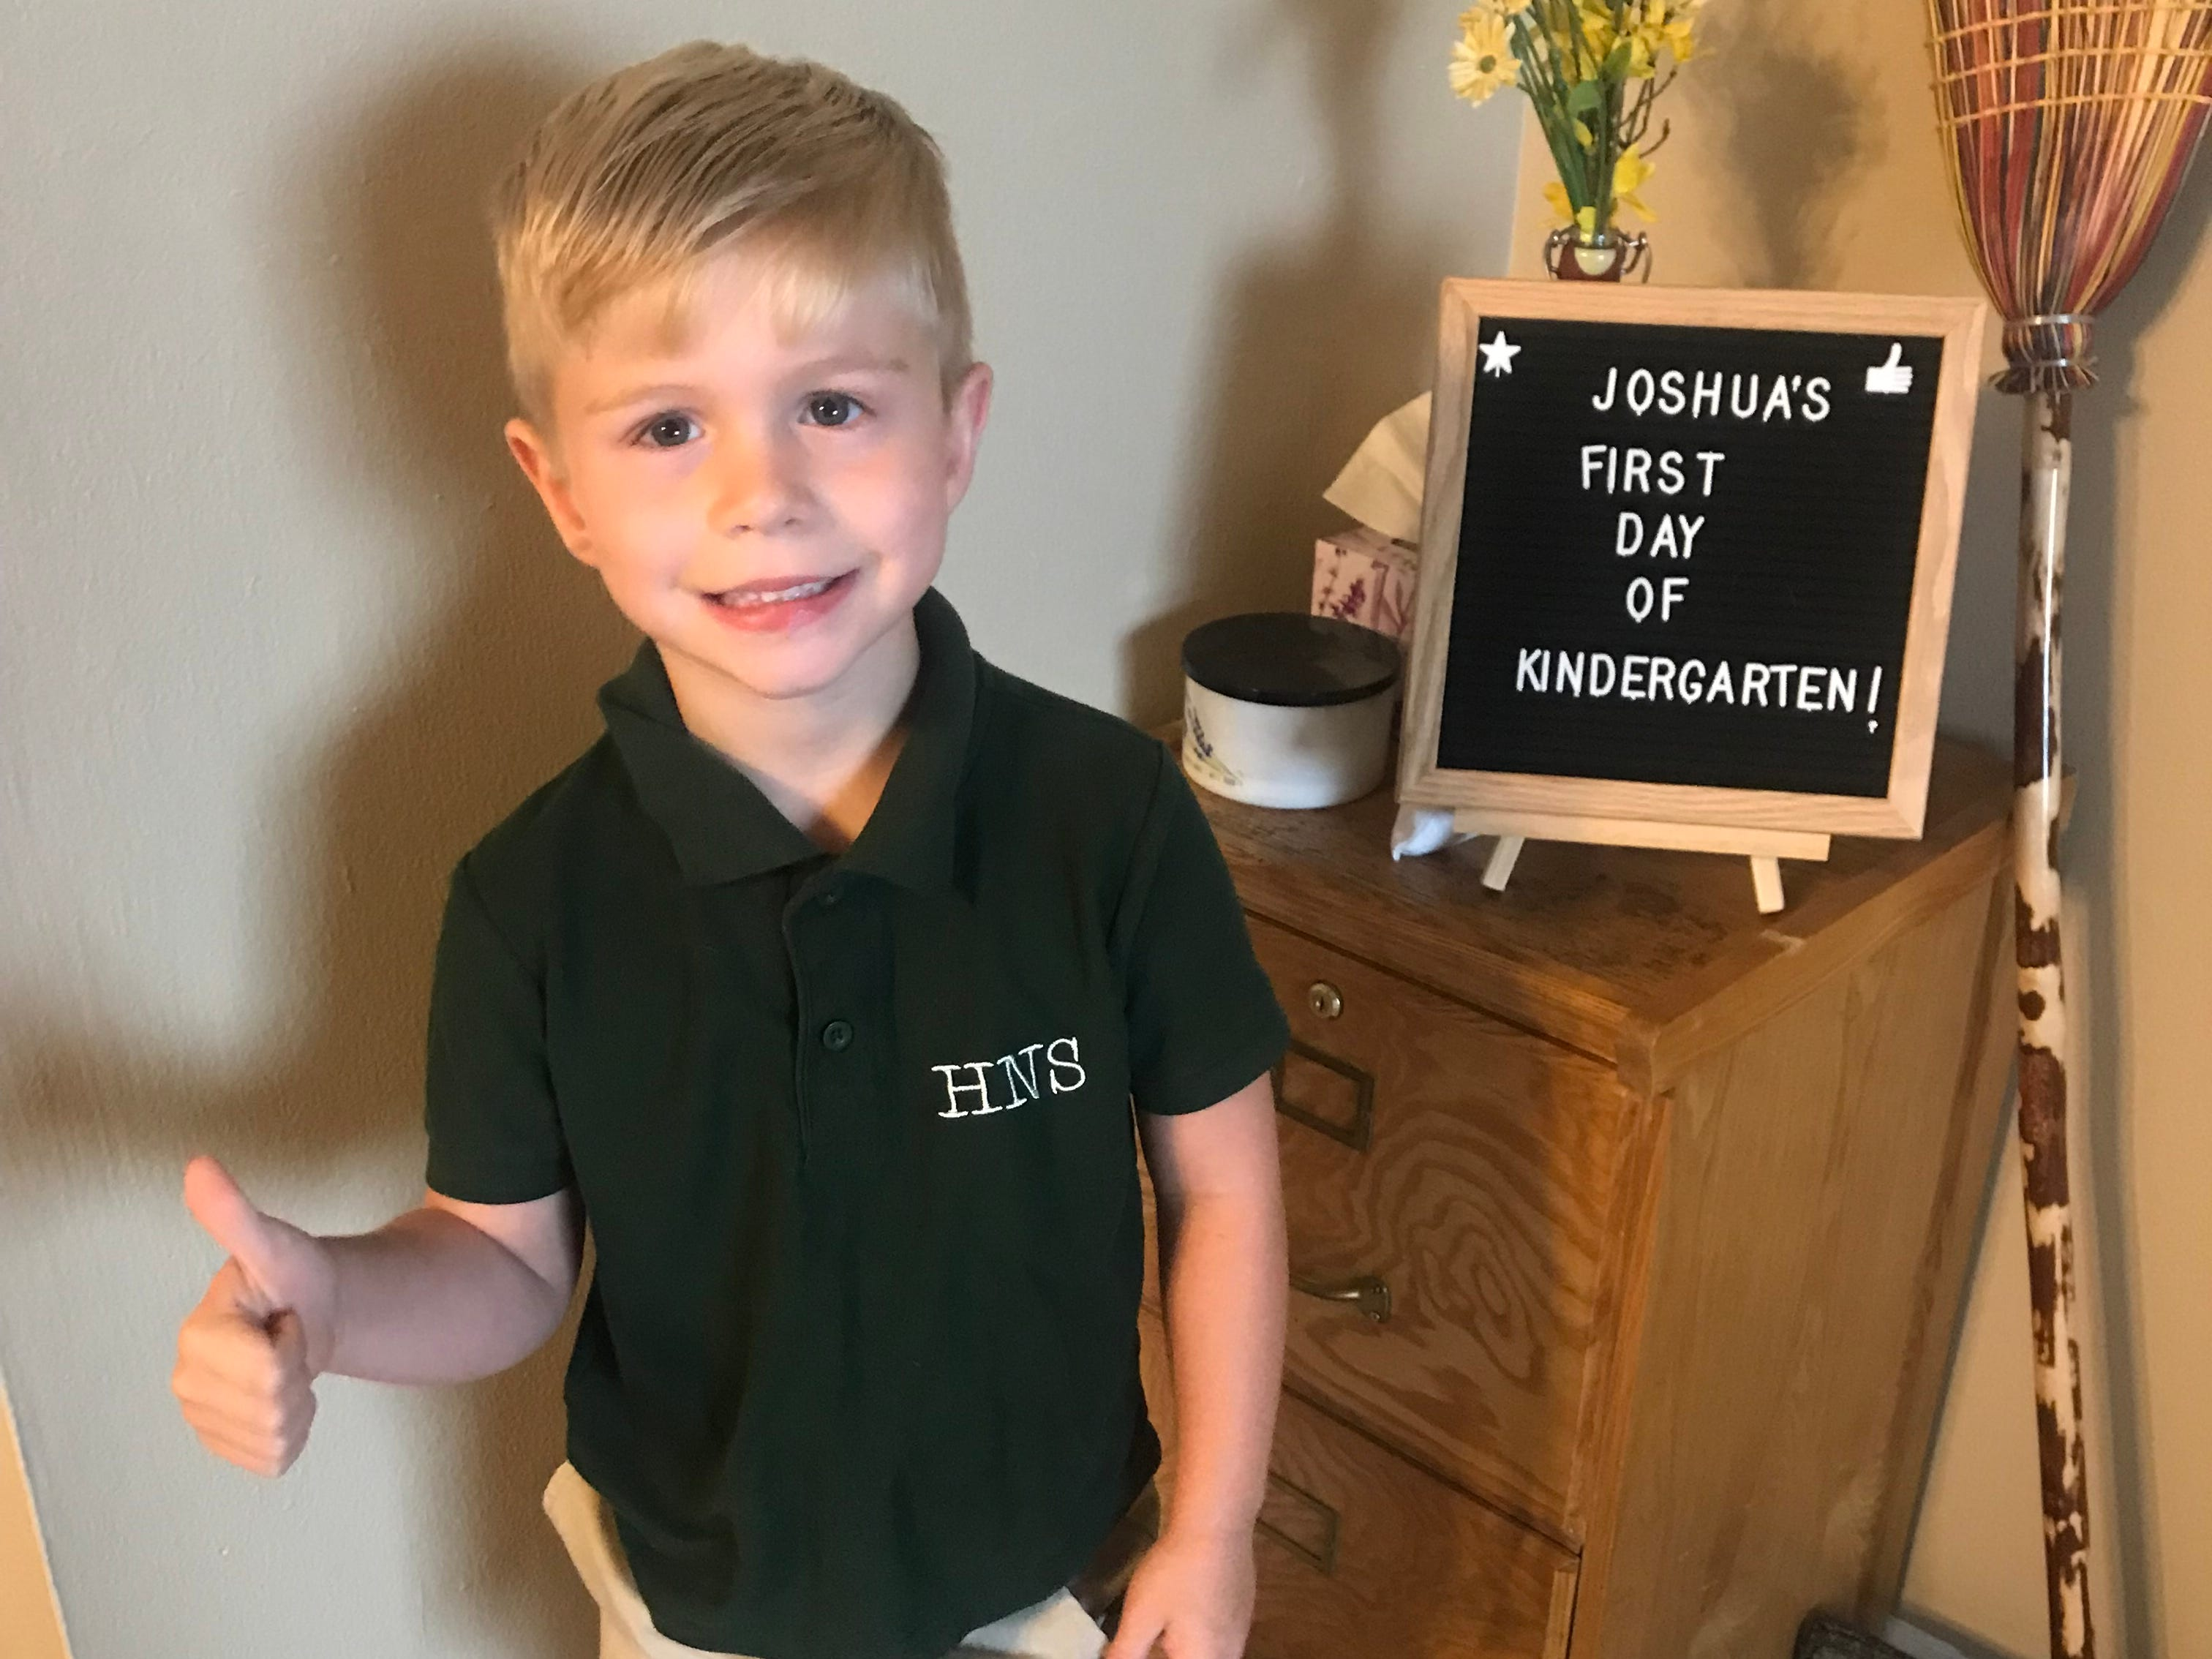 Joshua Hayden's first day of Kindergarten at Holy Name School in Henderson